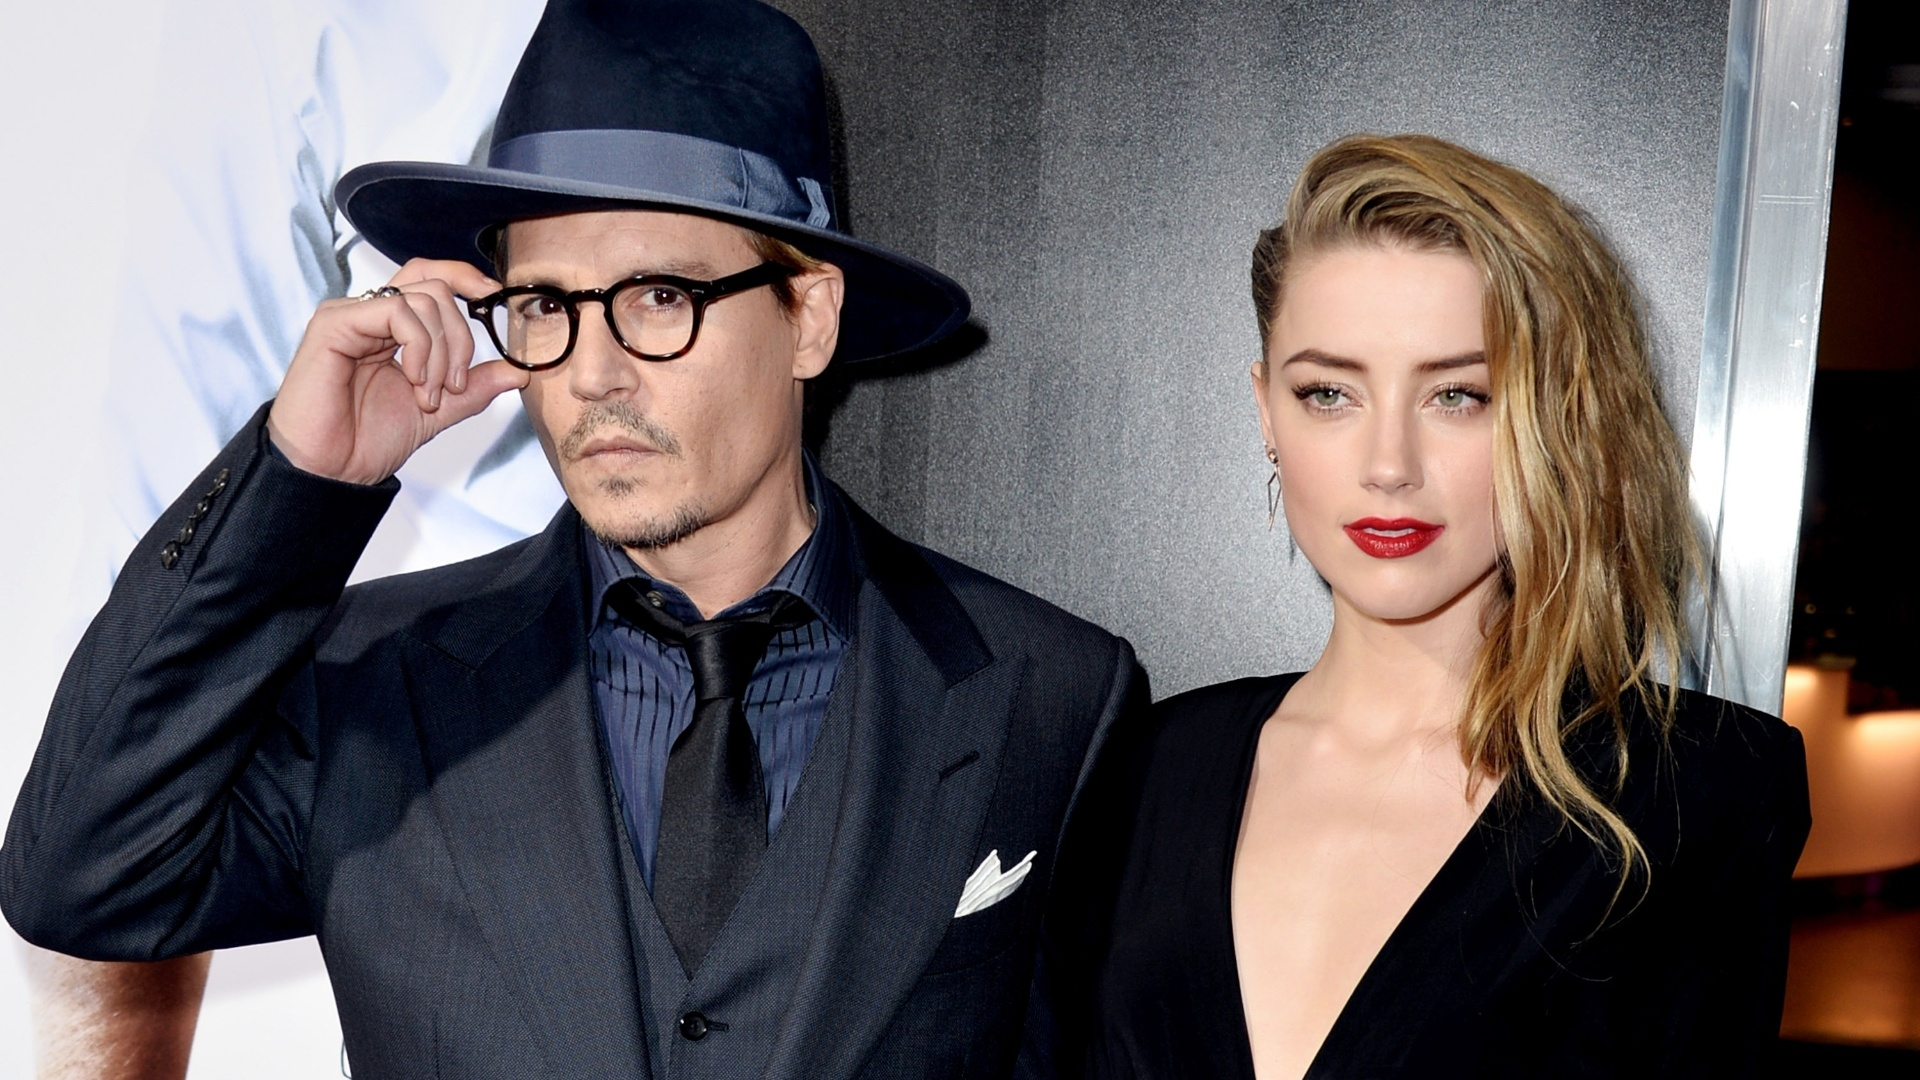 Amber acusou Johnny Depp de agressão e se divorciou do ator